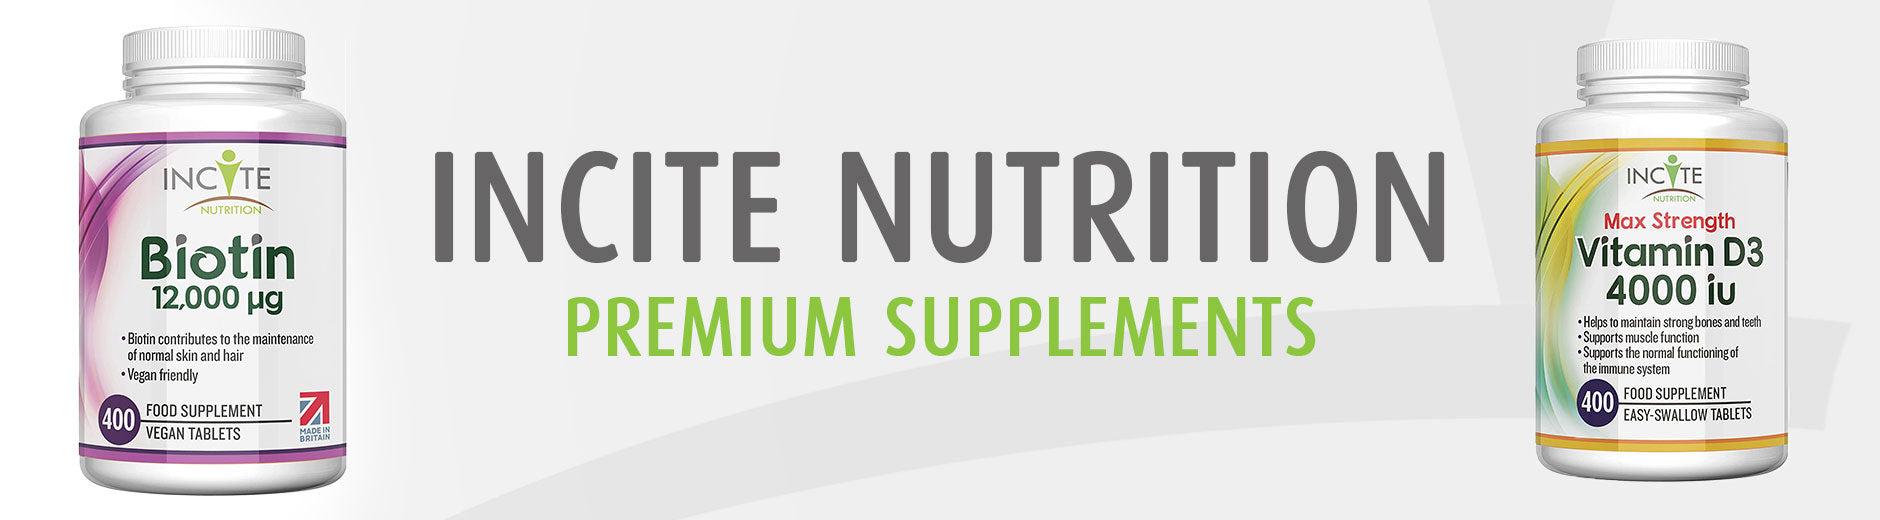 Incite Nutrition Premium Supplements